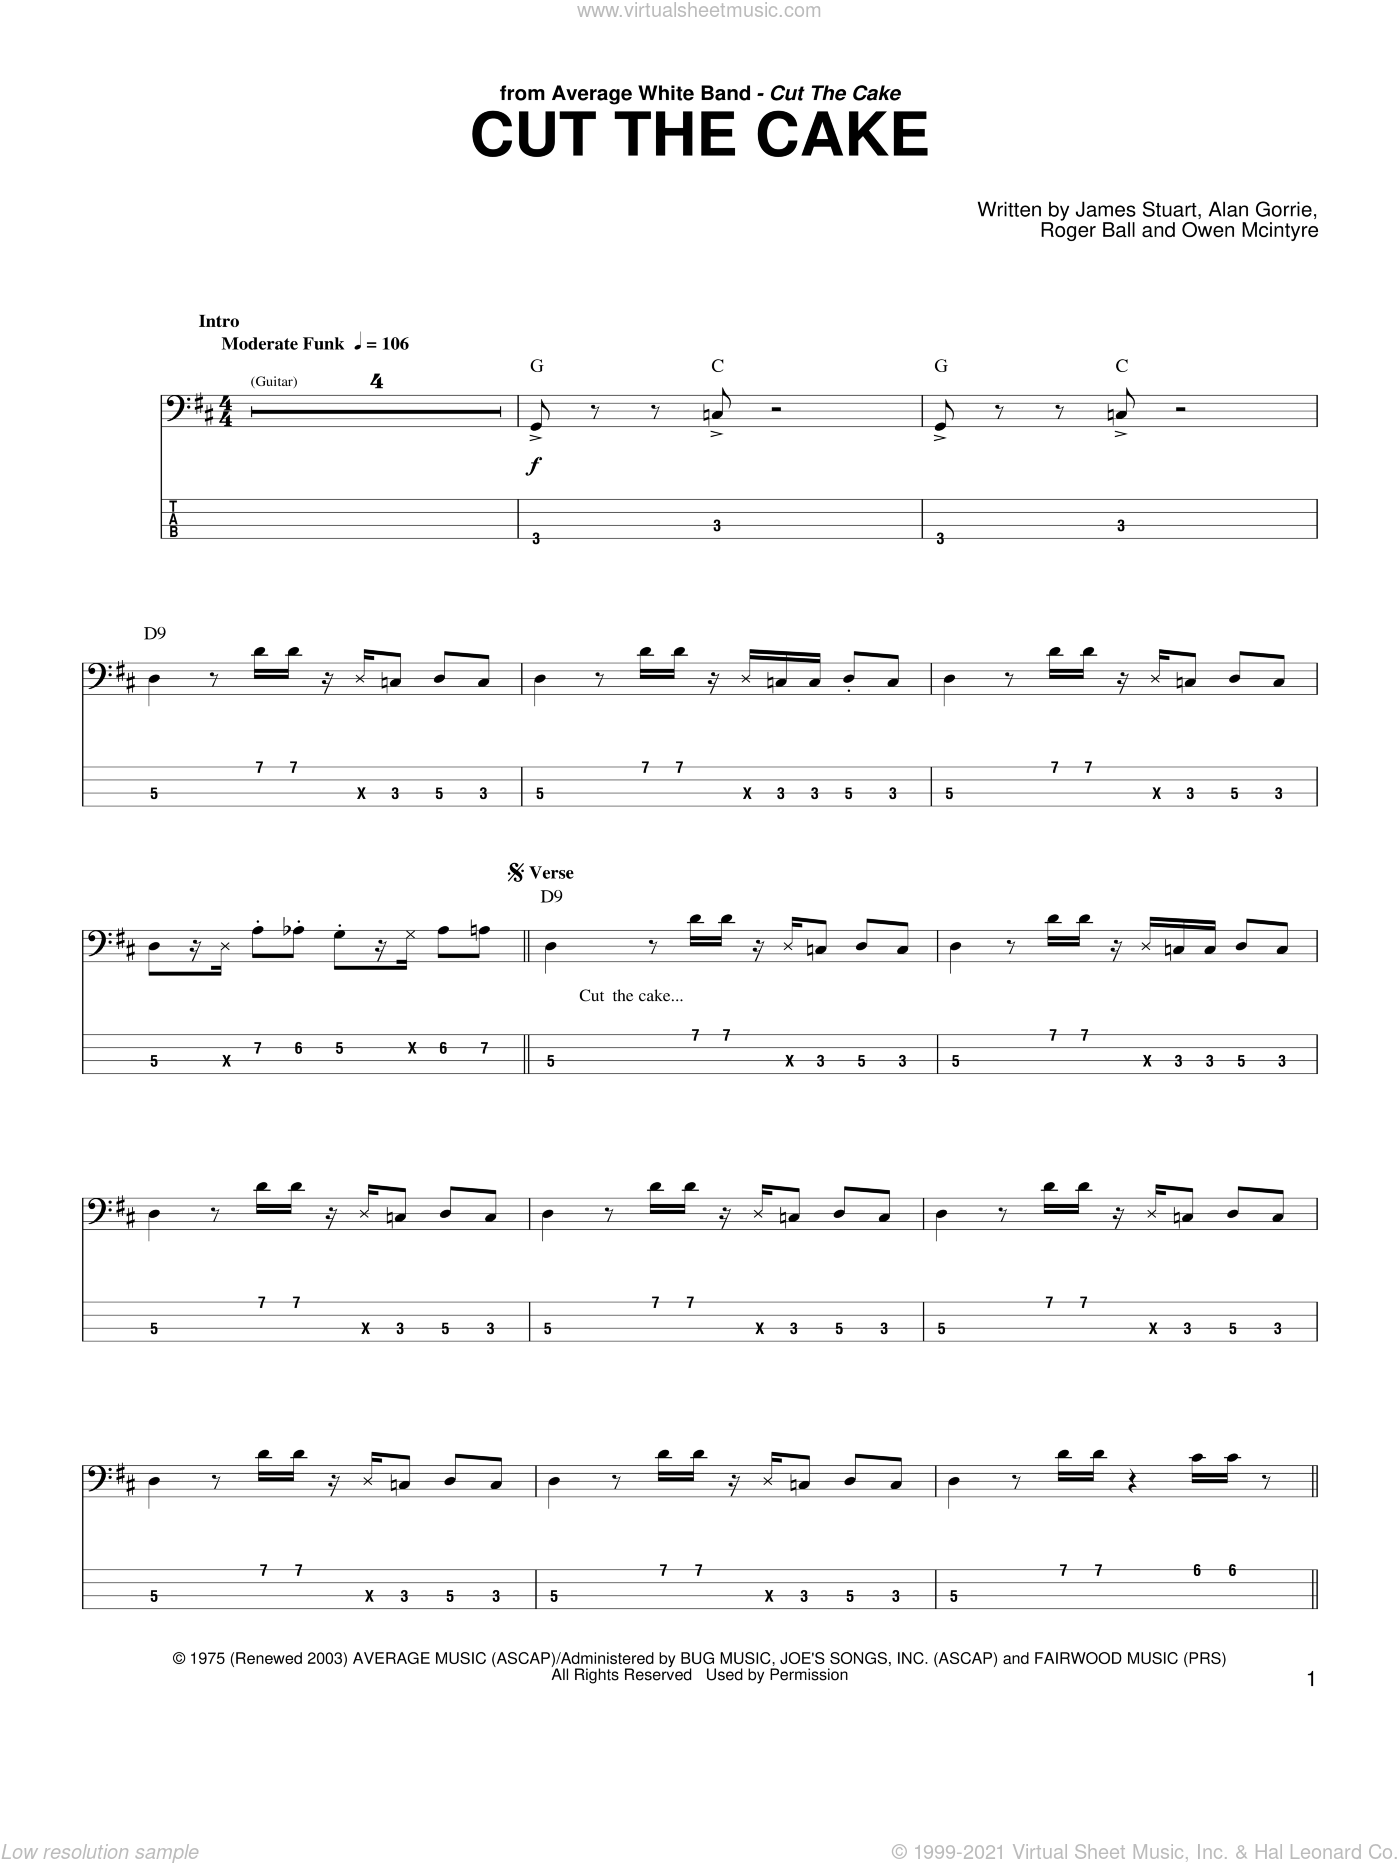 Cut The Cake sheet music for bass (tablature) (bass guitar) by Average White Band, Alan Gorrie, Duncan Malcolm, James Stuart, Owen McIntyre, Robbie McIntosh and Roger Ball, intermediate skill level